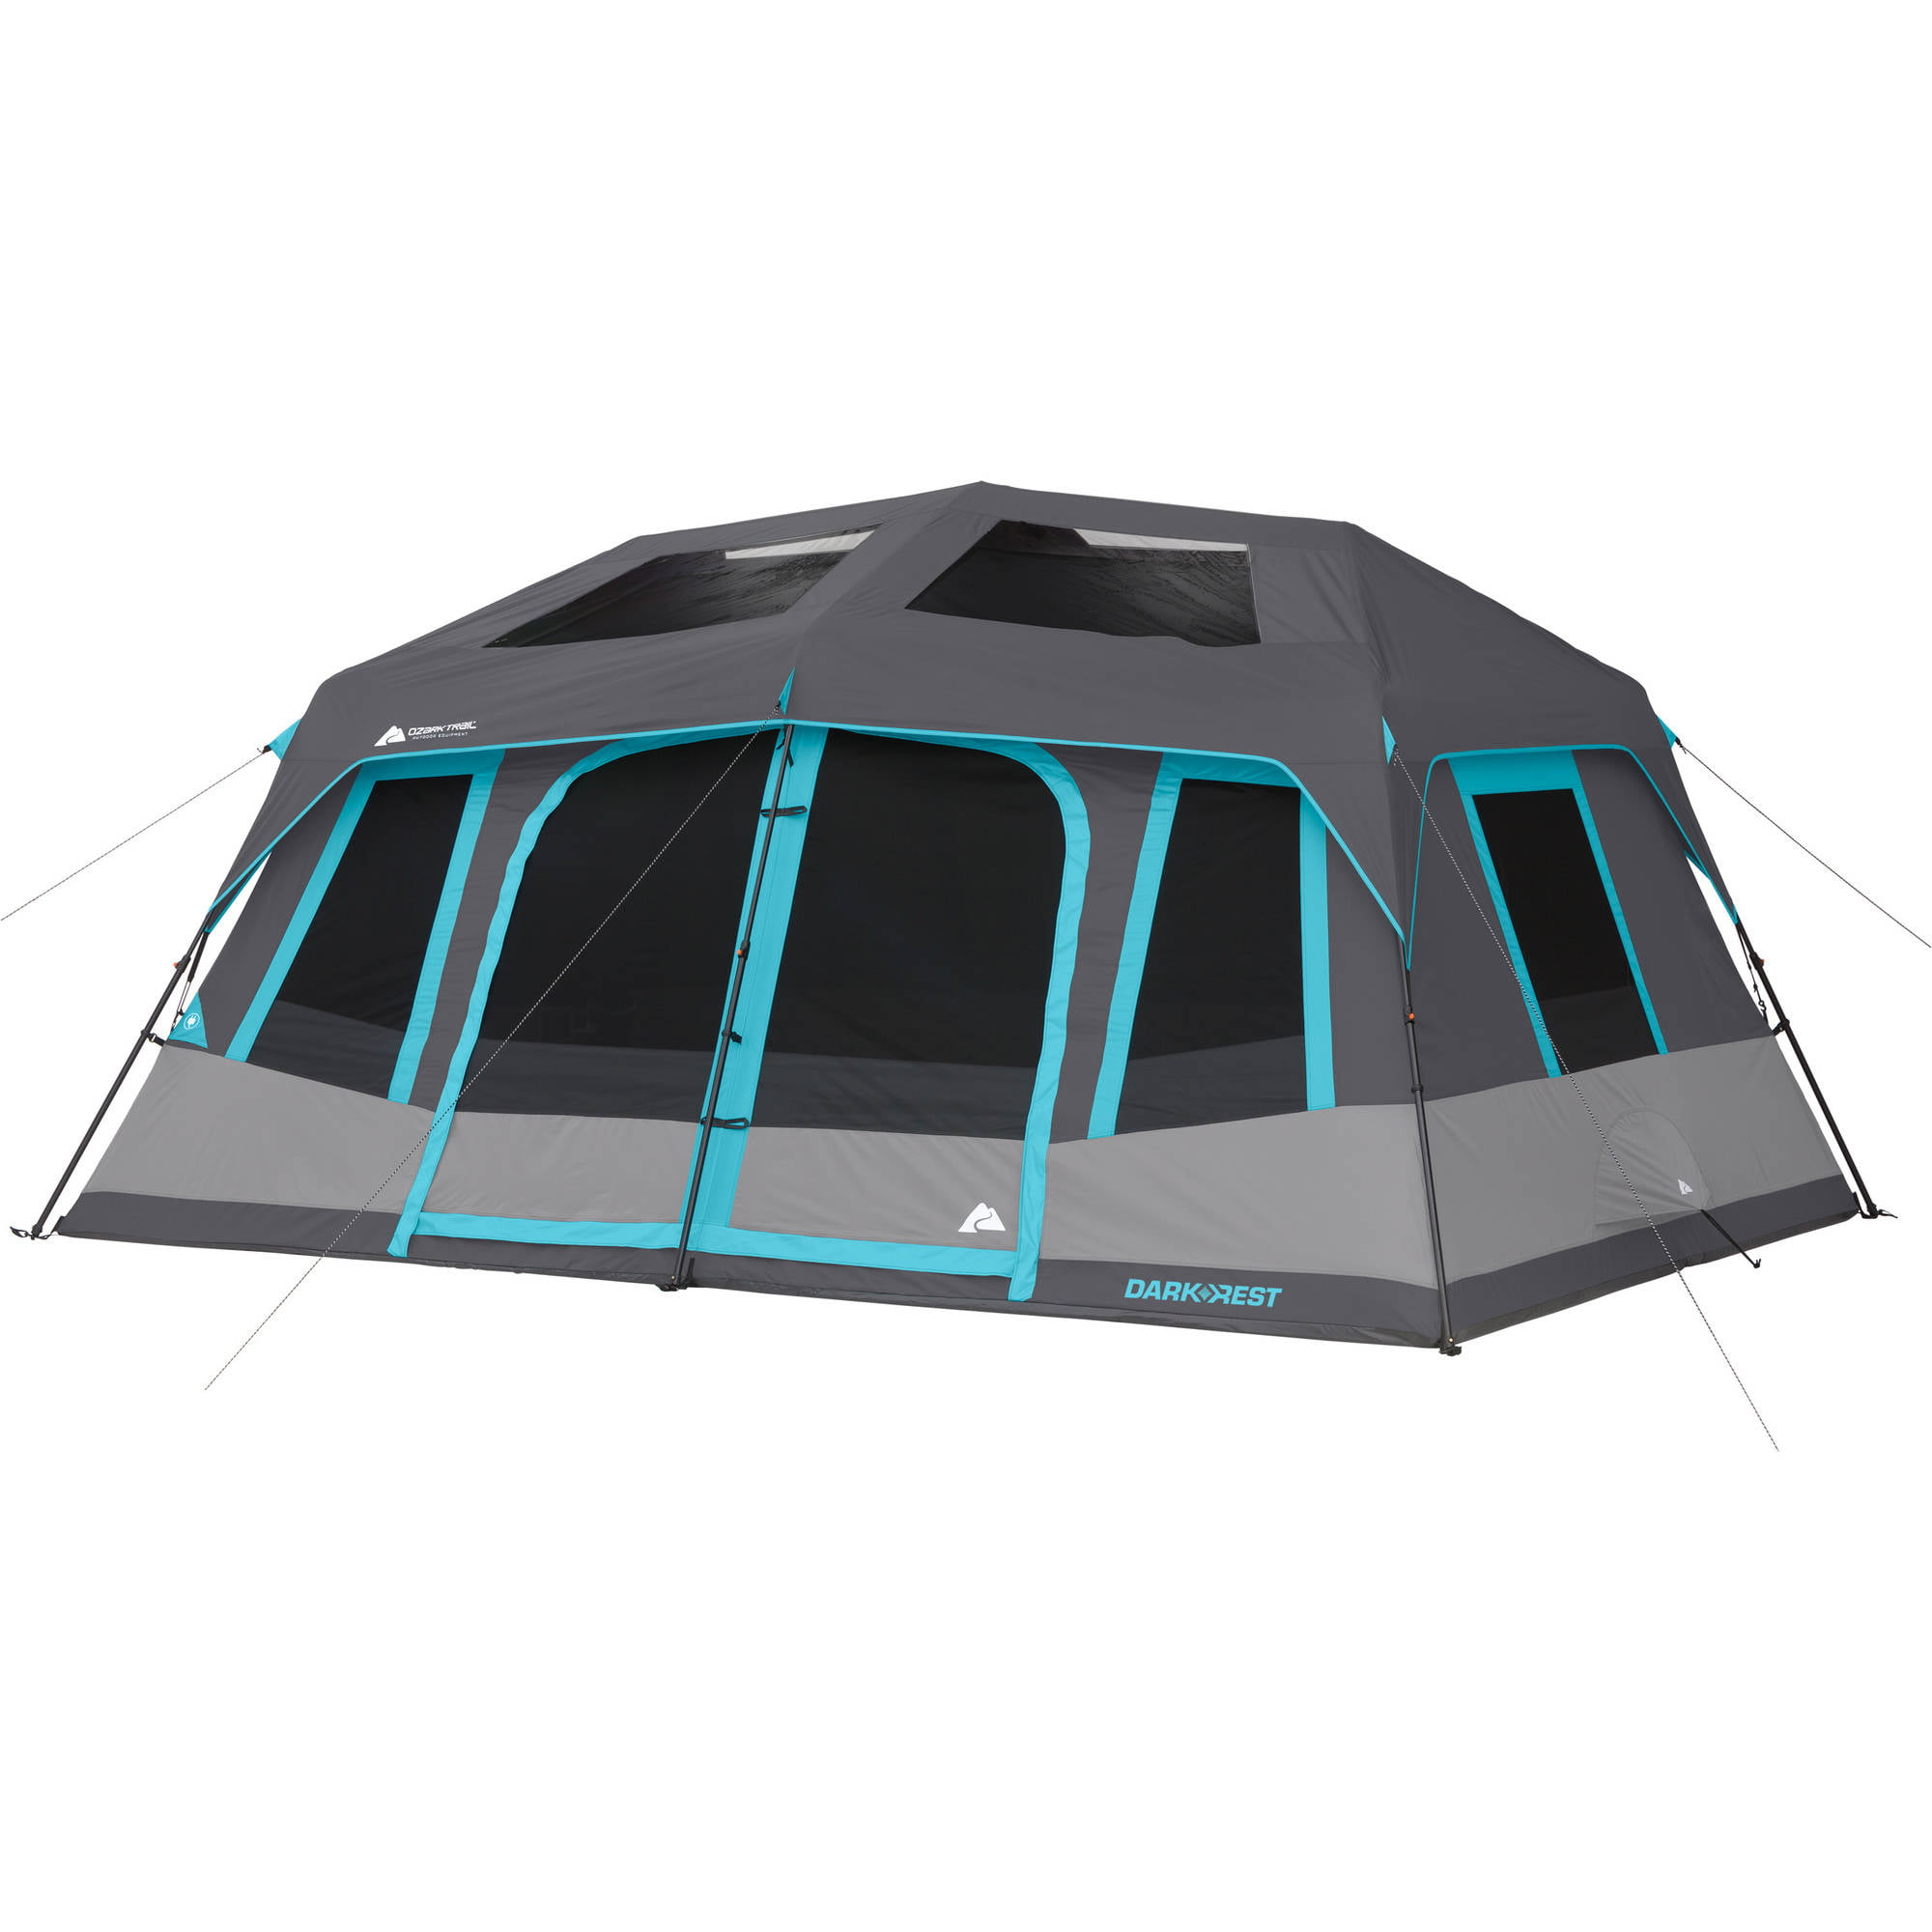 Ozark Trail 10-Person Dark Rest Instant Cabin Tent by Bohemian Travel Gear Limited